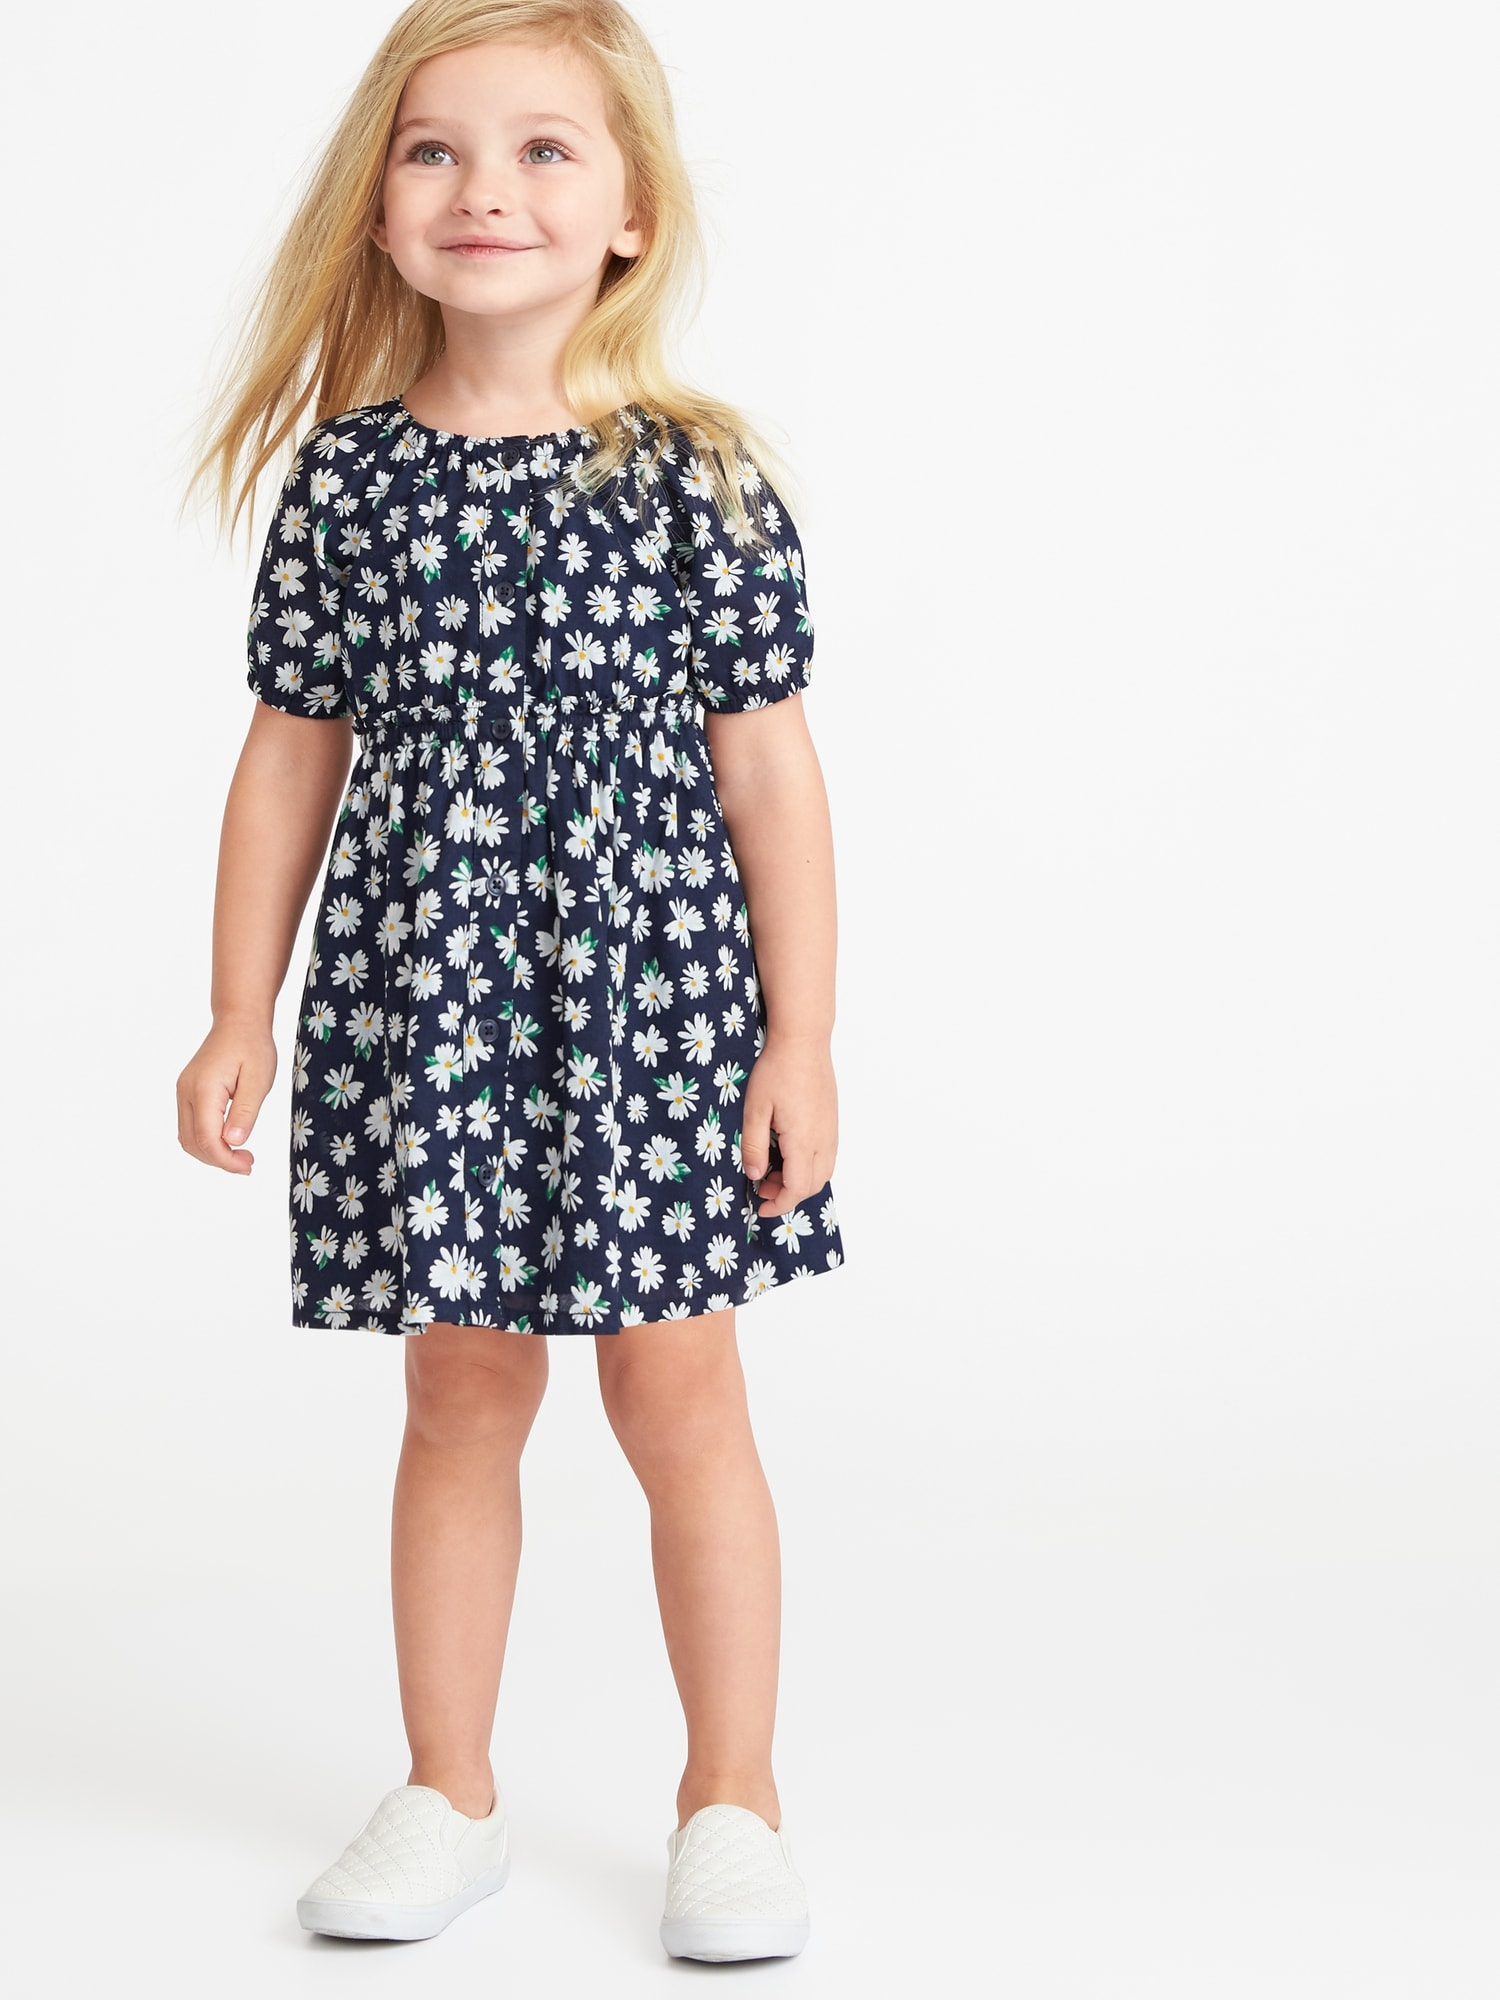 9f6cb519c8a1 Floral-Print Shirt Dress for Toddler Girls | Old Navy